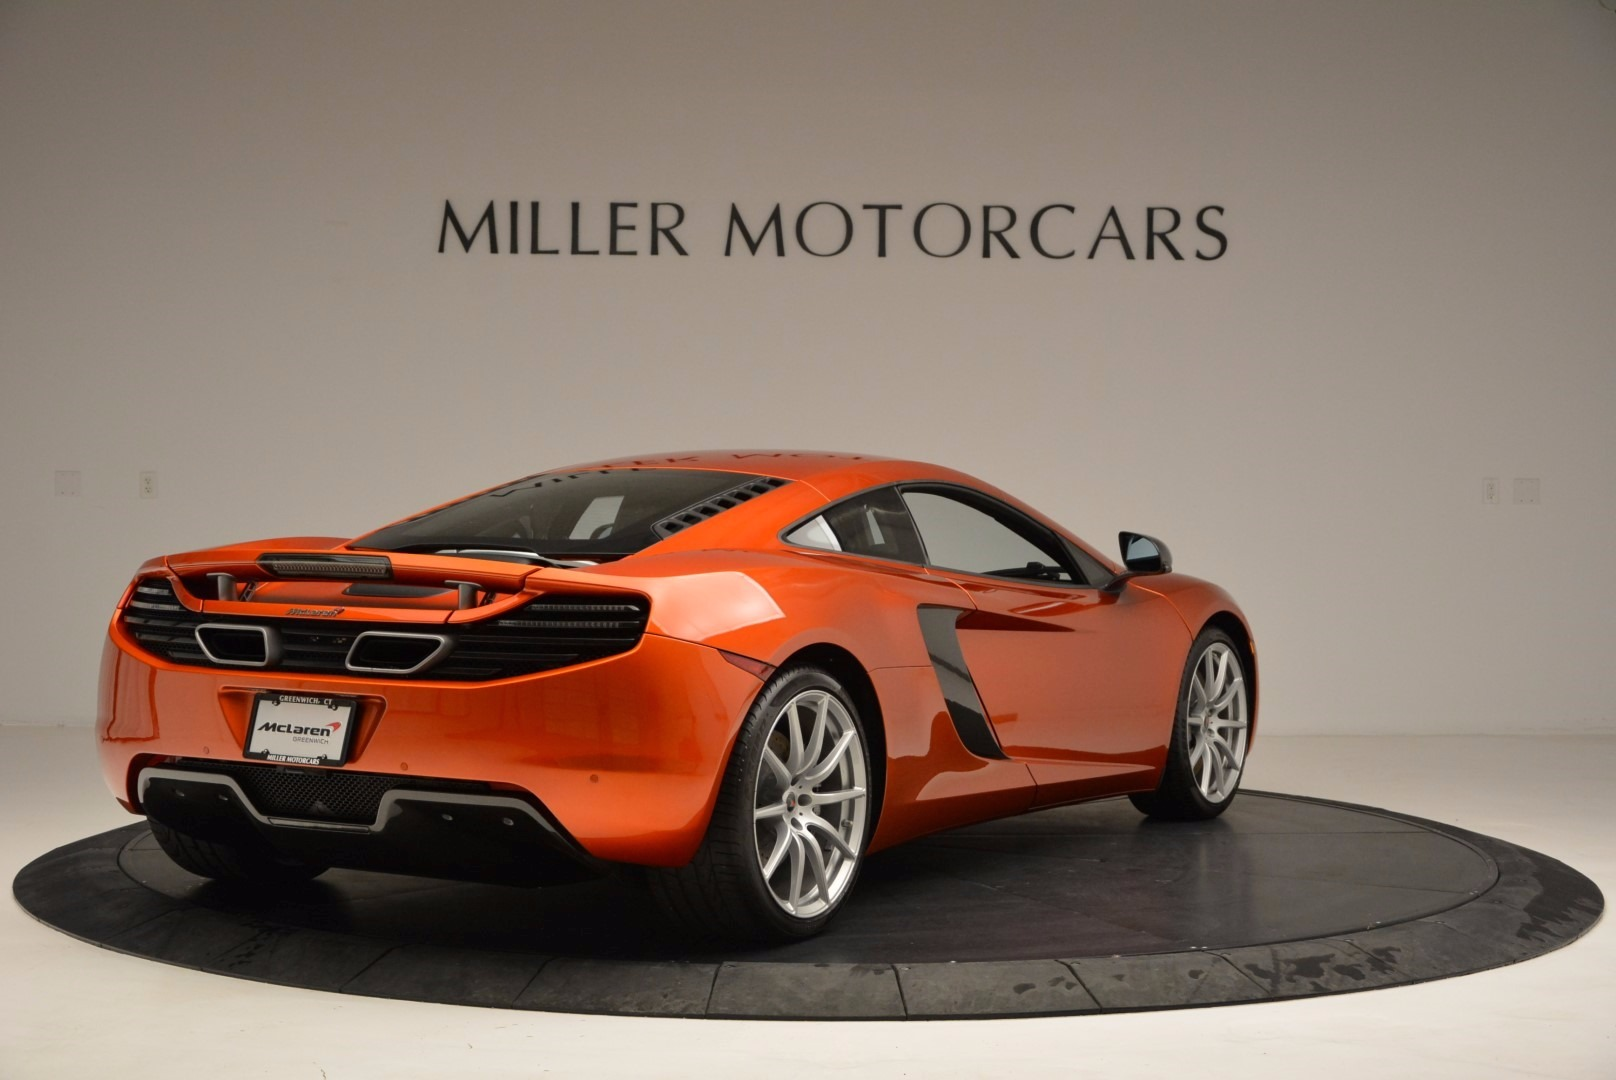 Used 2012 McLaren MP4-12C  For Sale In Greenwich, CT. Alfa Romeo of Greenwich, 3094 1035_p7